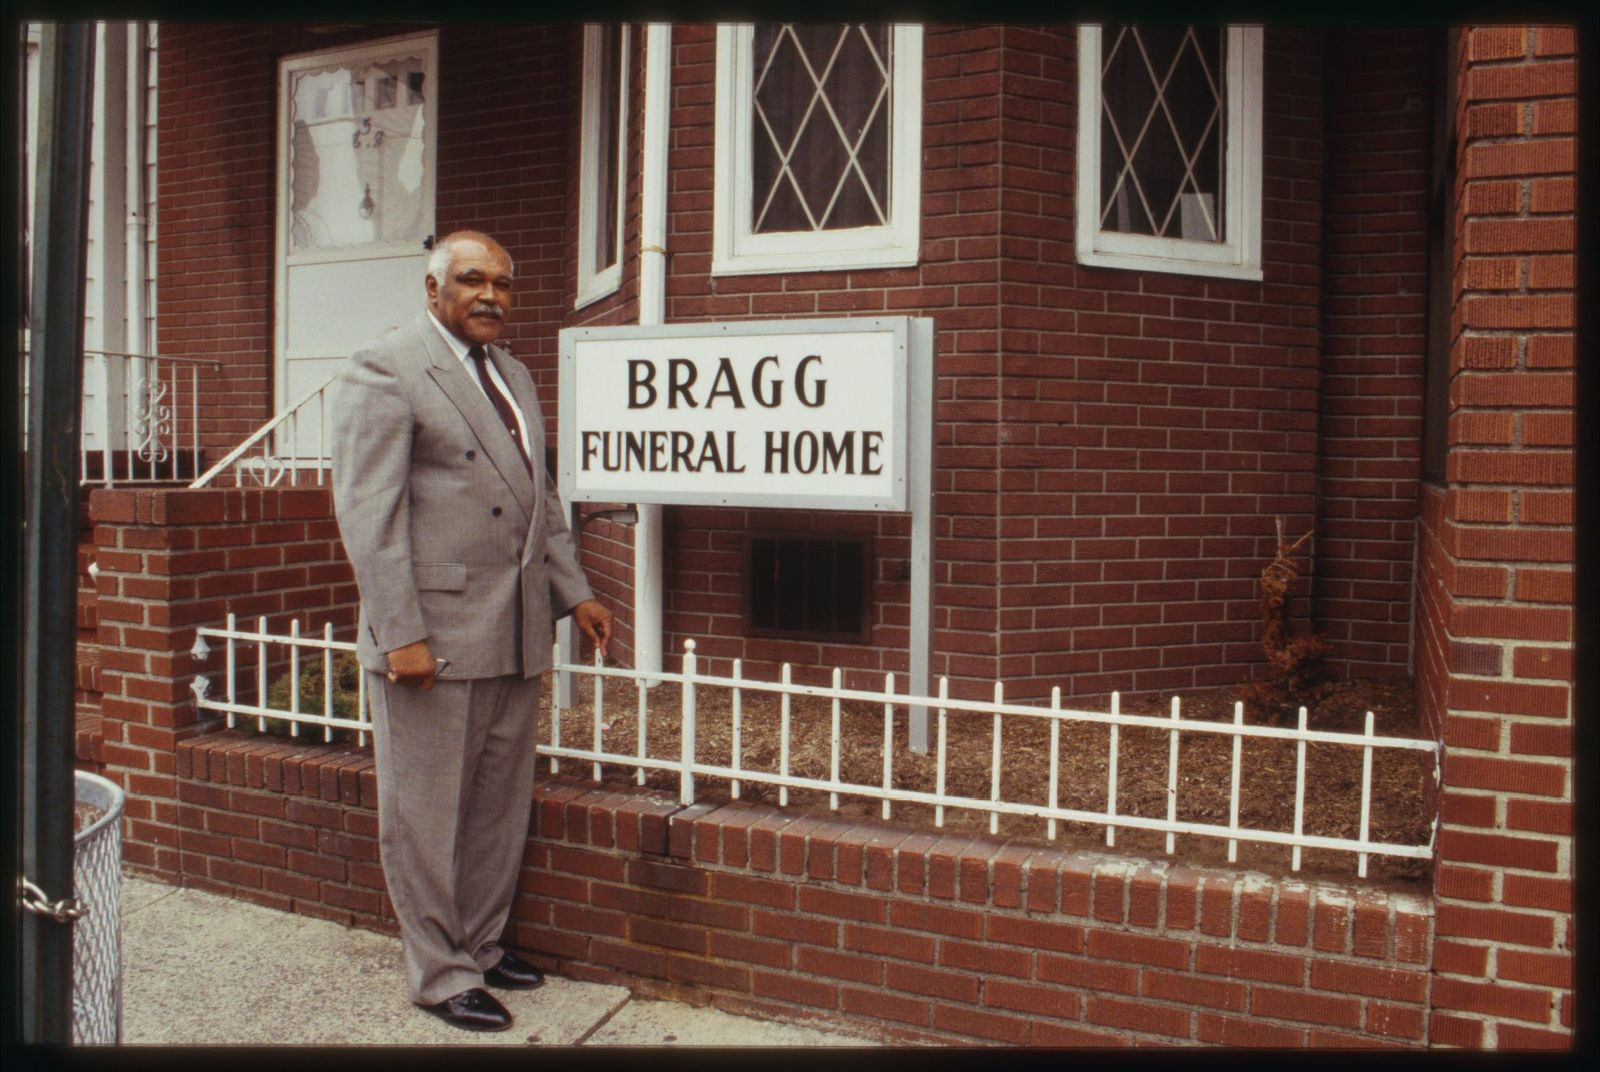 Carnie Bragg Owner Of Bragg Funeral Home Poses In Front Of The